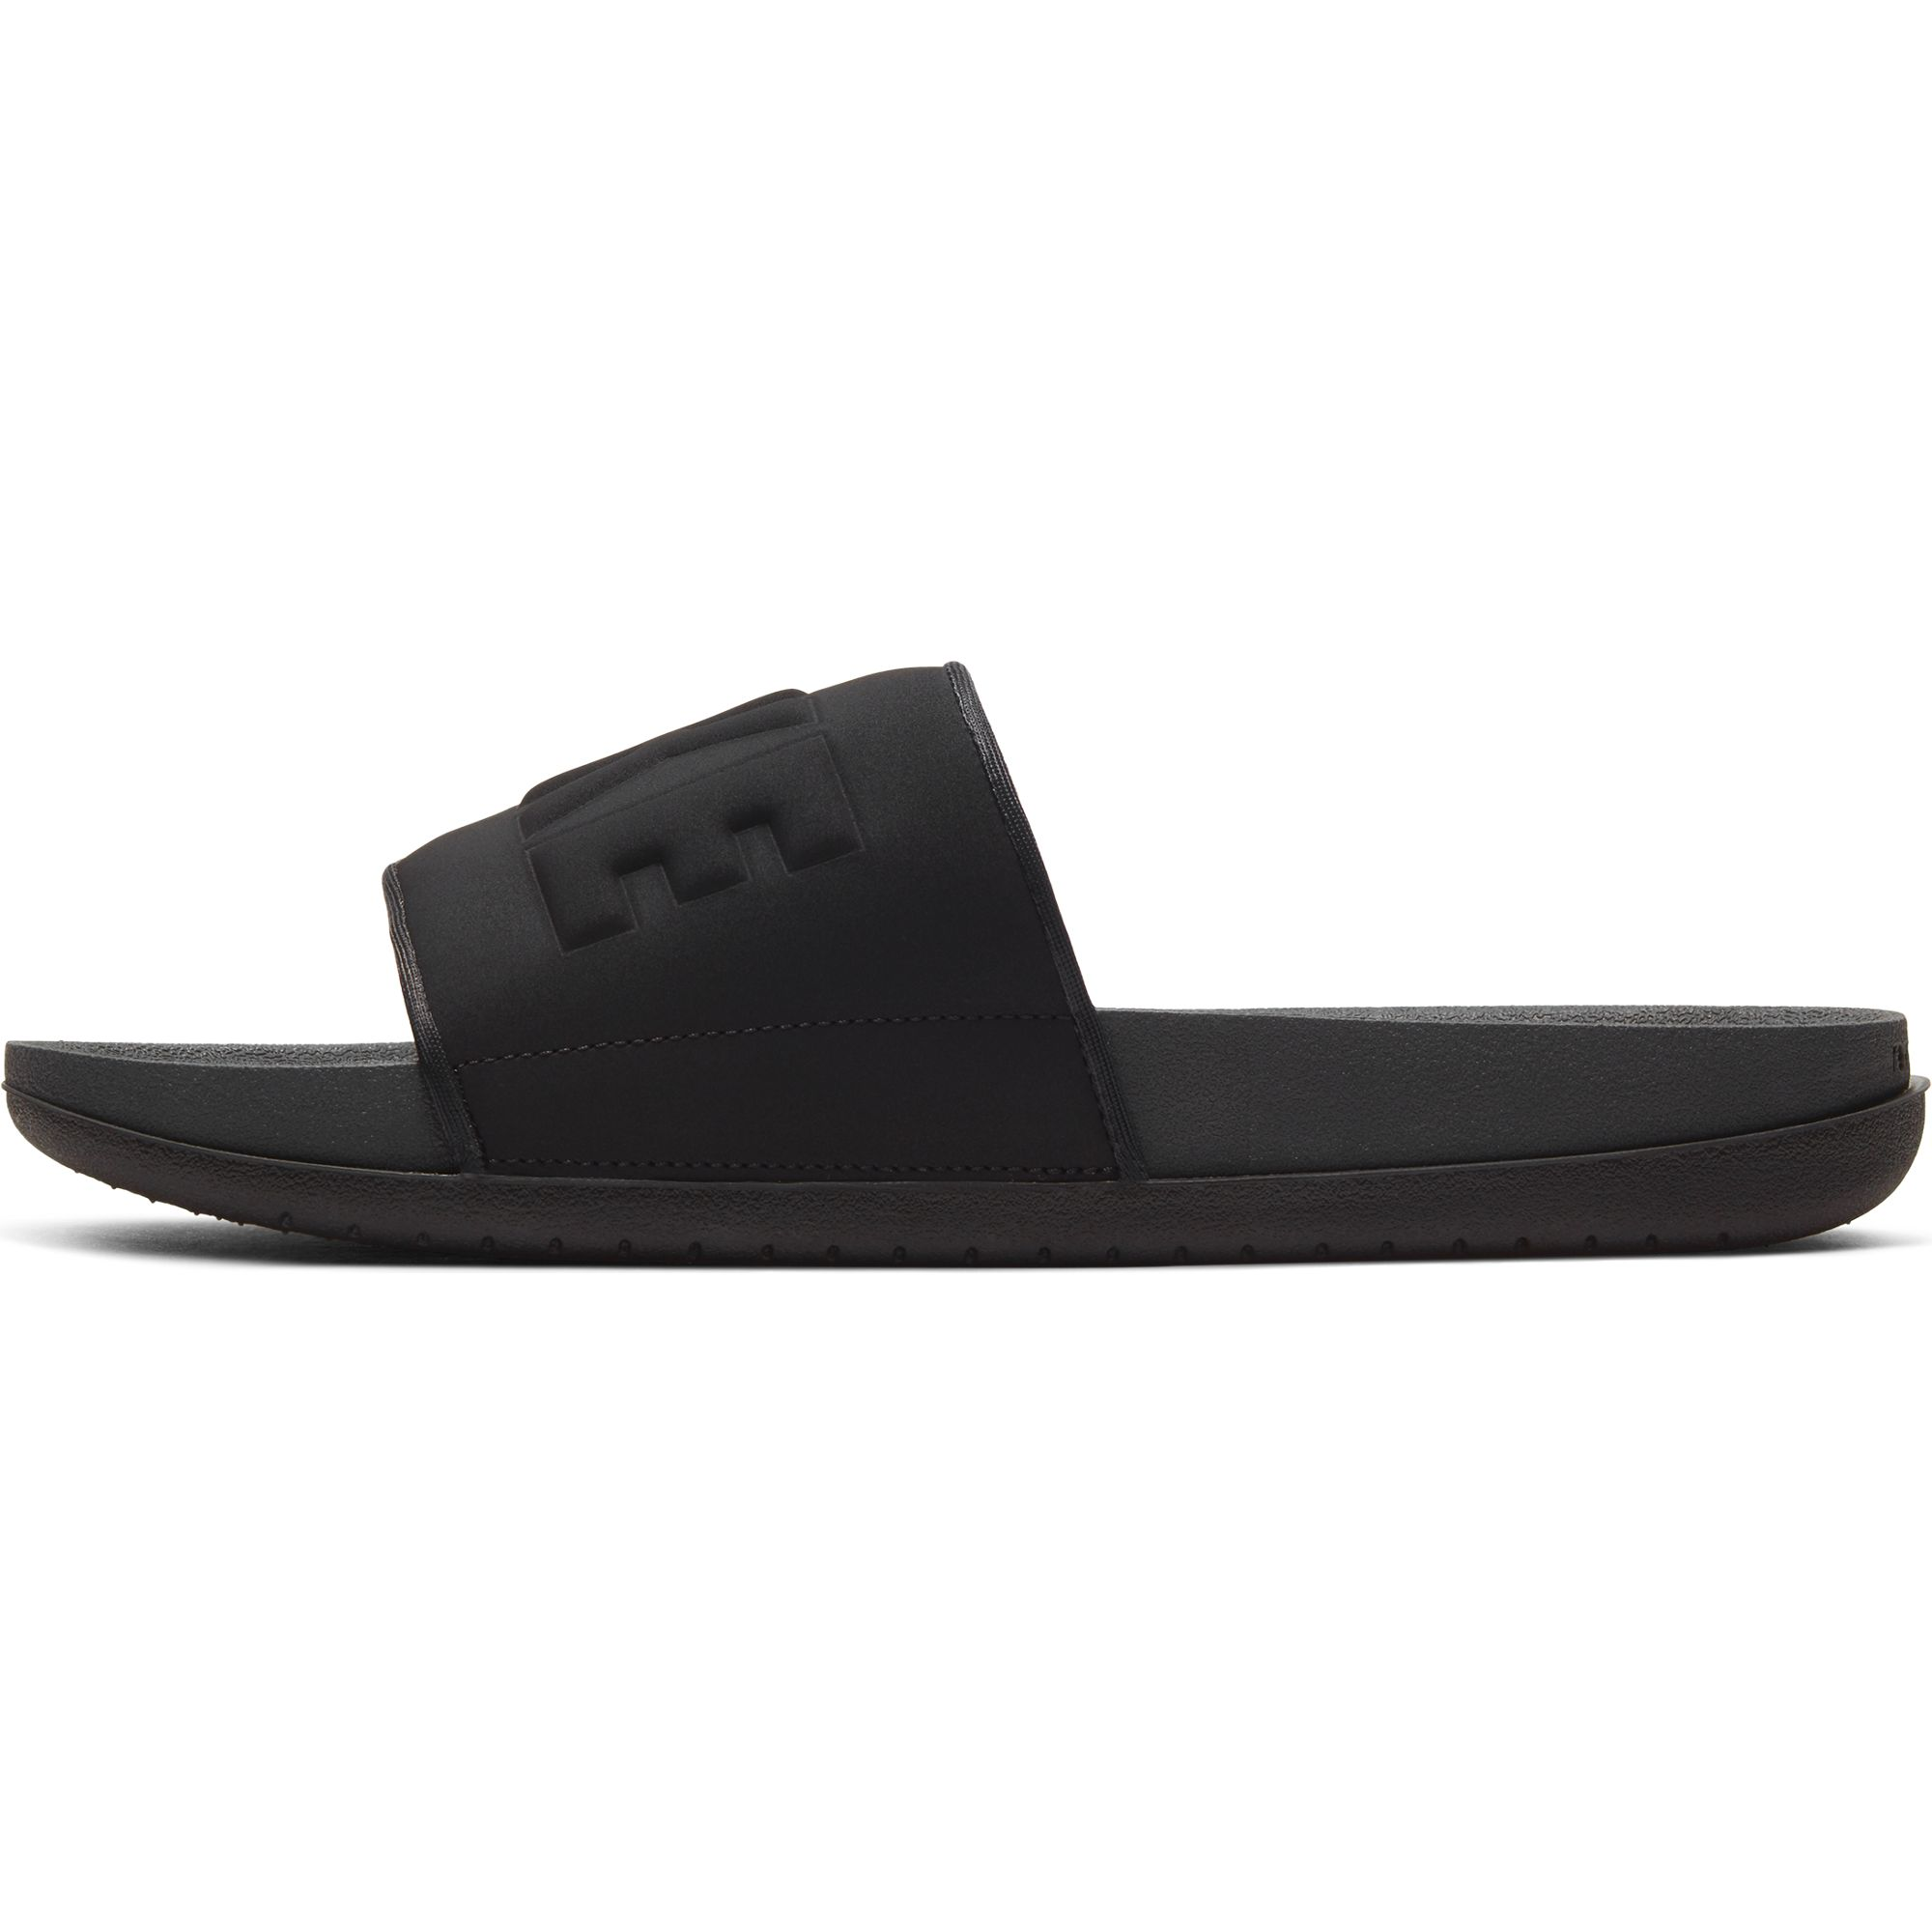 Men's Offcourt Slides, , large